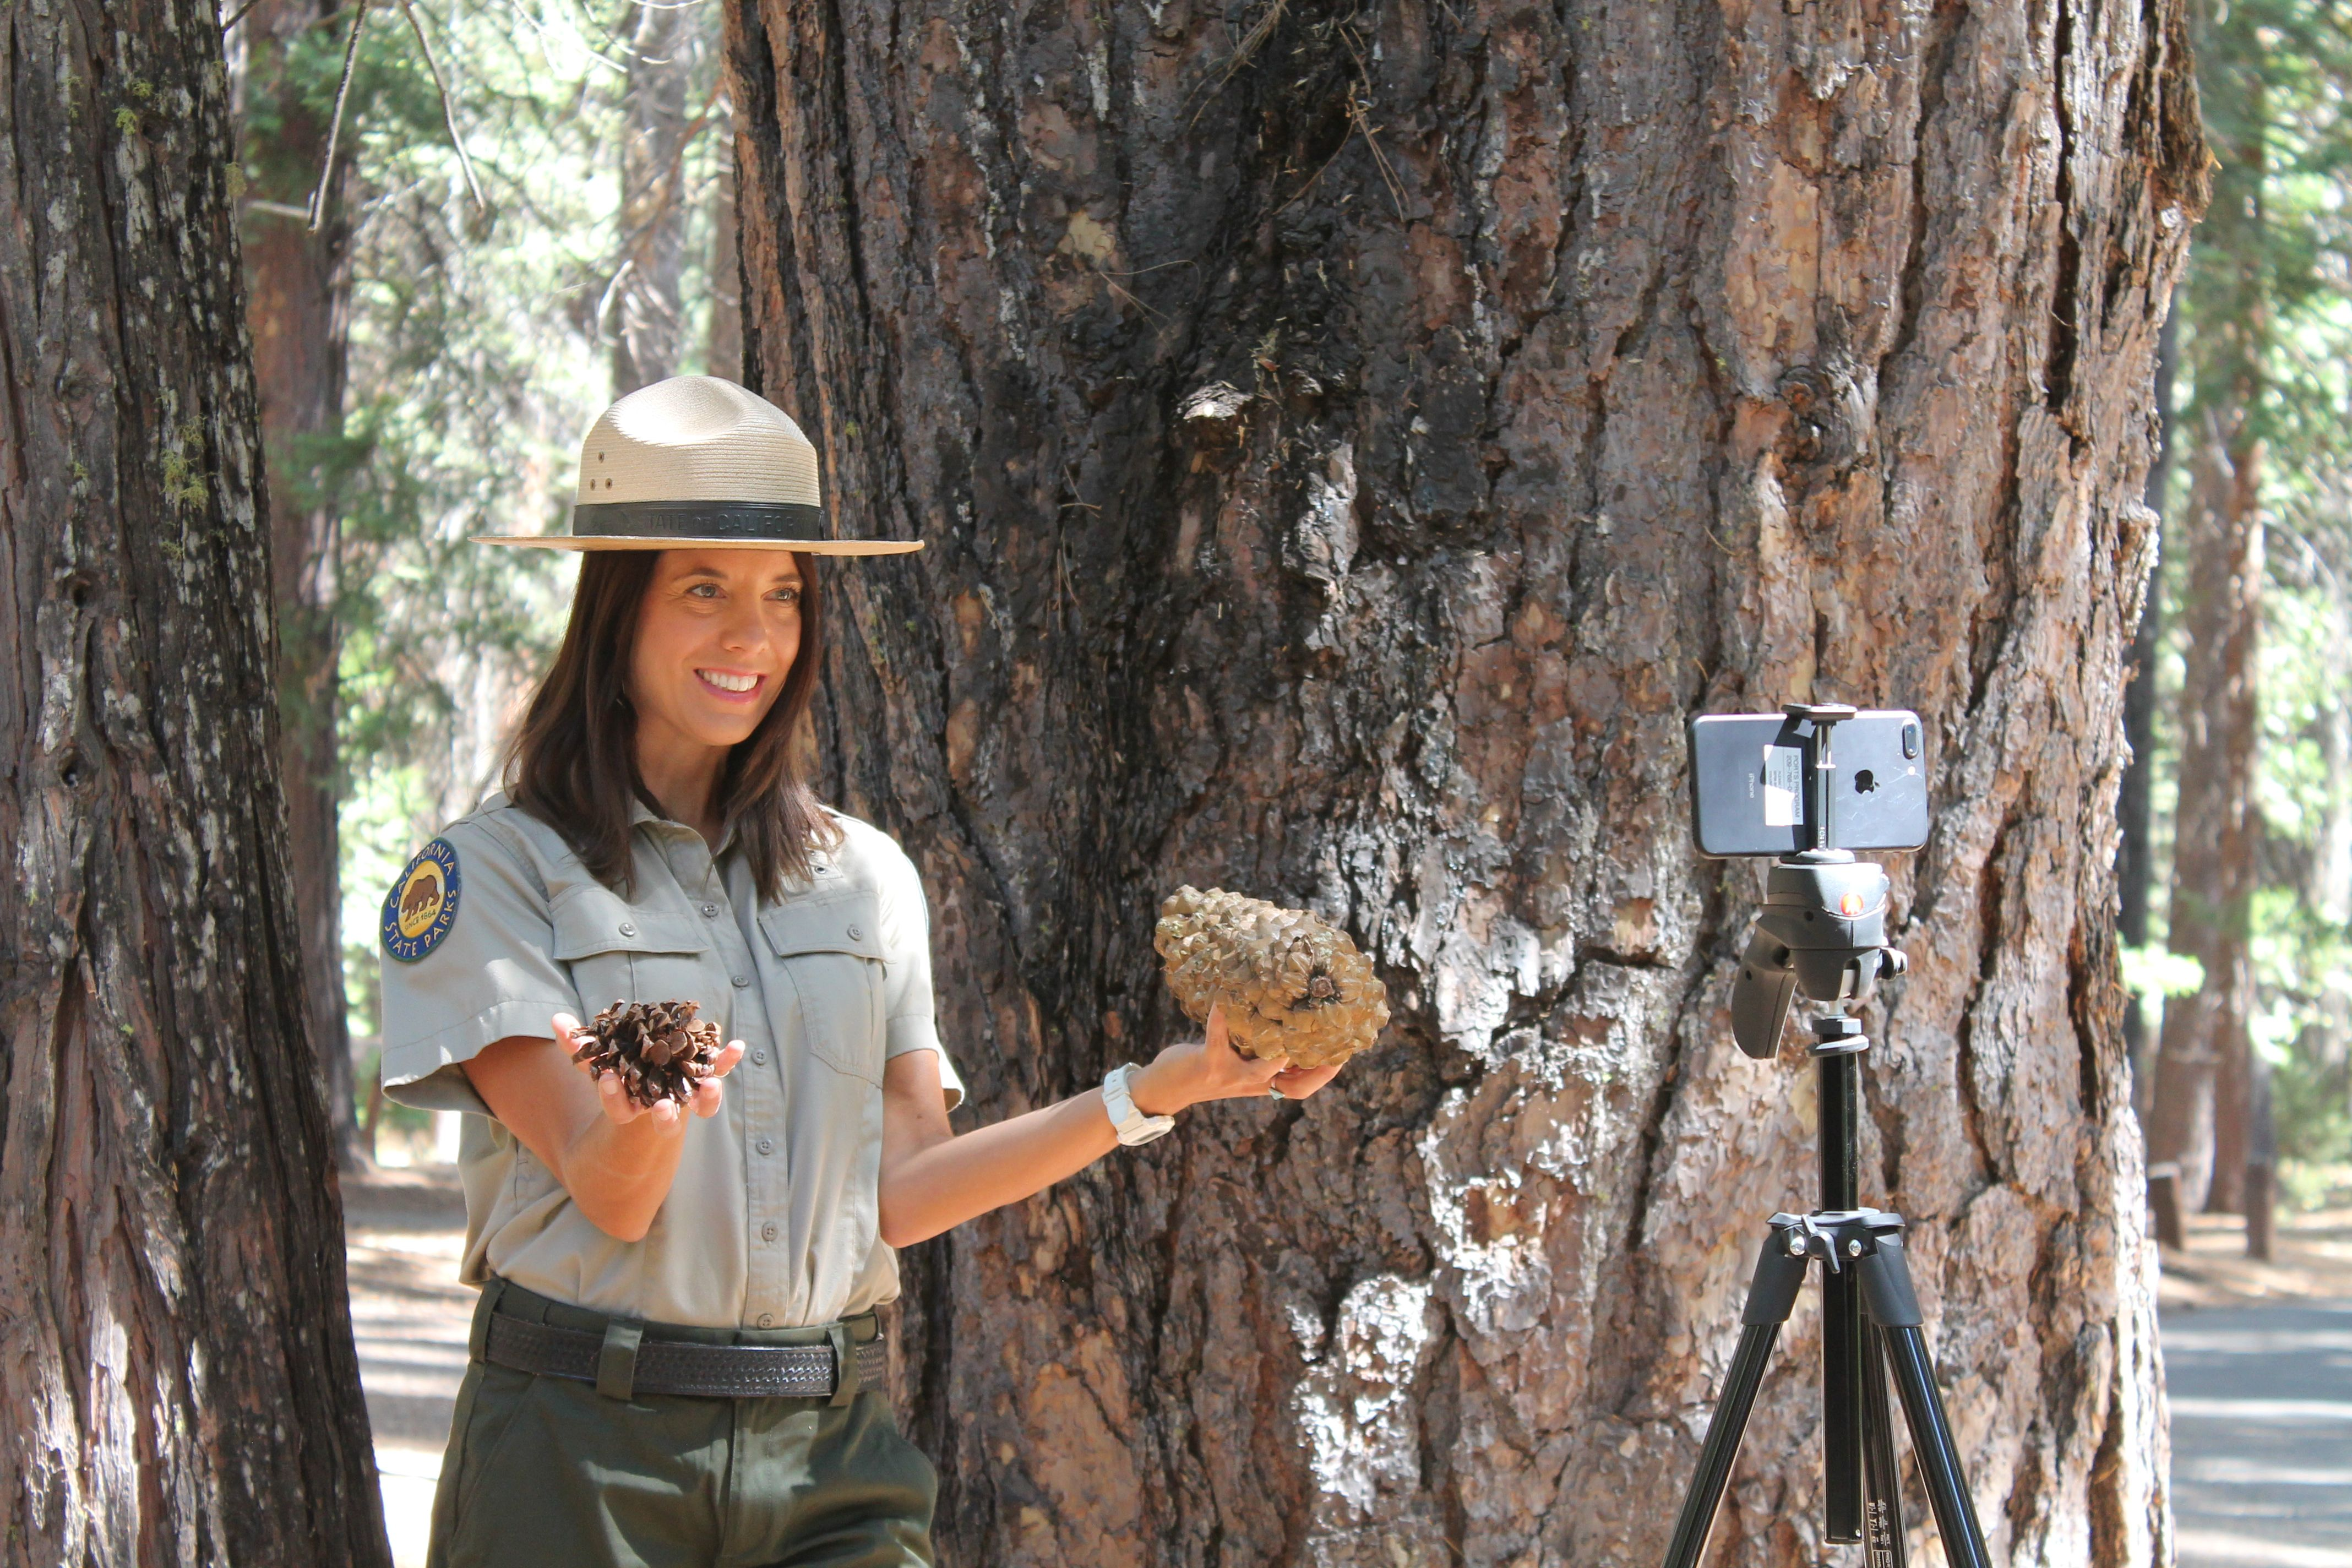 Banner for Save the Redwoods League and California State Parks Launch New Digital Field Trip to Giant Sequoia Forest